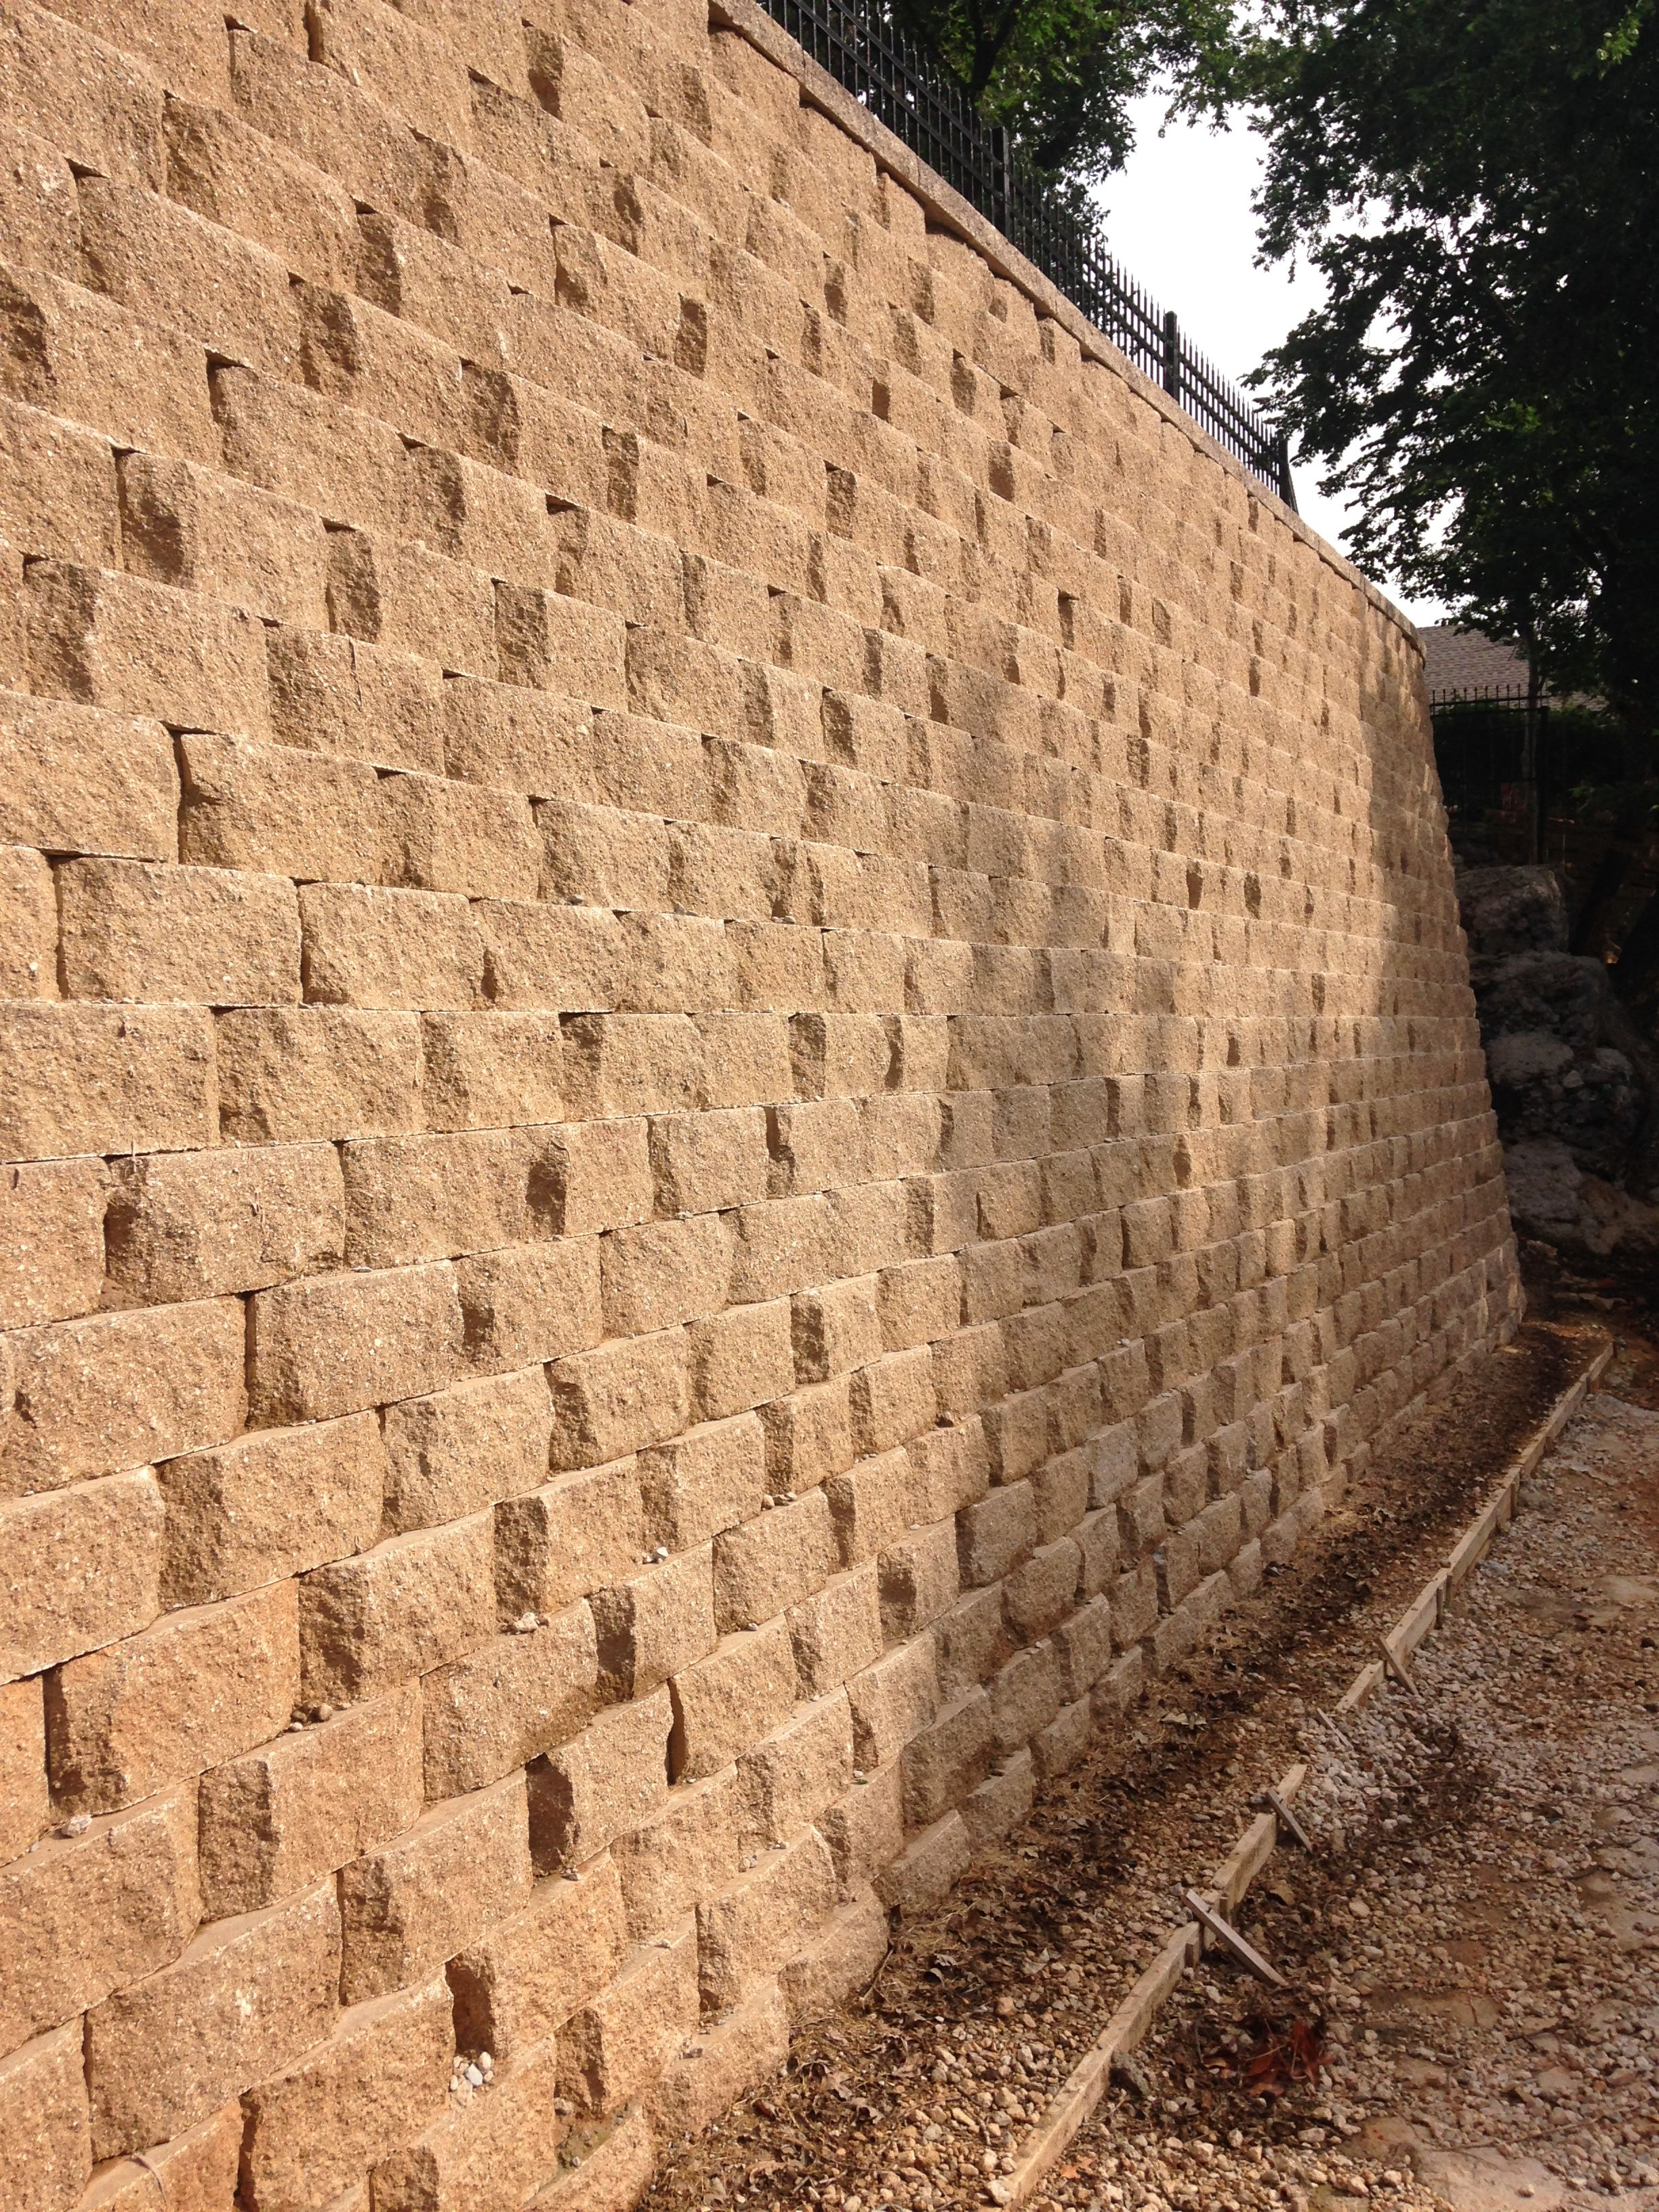 During Heavy Rains This 12 Retaining Wall Has 2 Feet Of Extra Height This Wall Has Endured 2 100 Year Rain Event Landscape Design Hardscape Retaining Wall